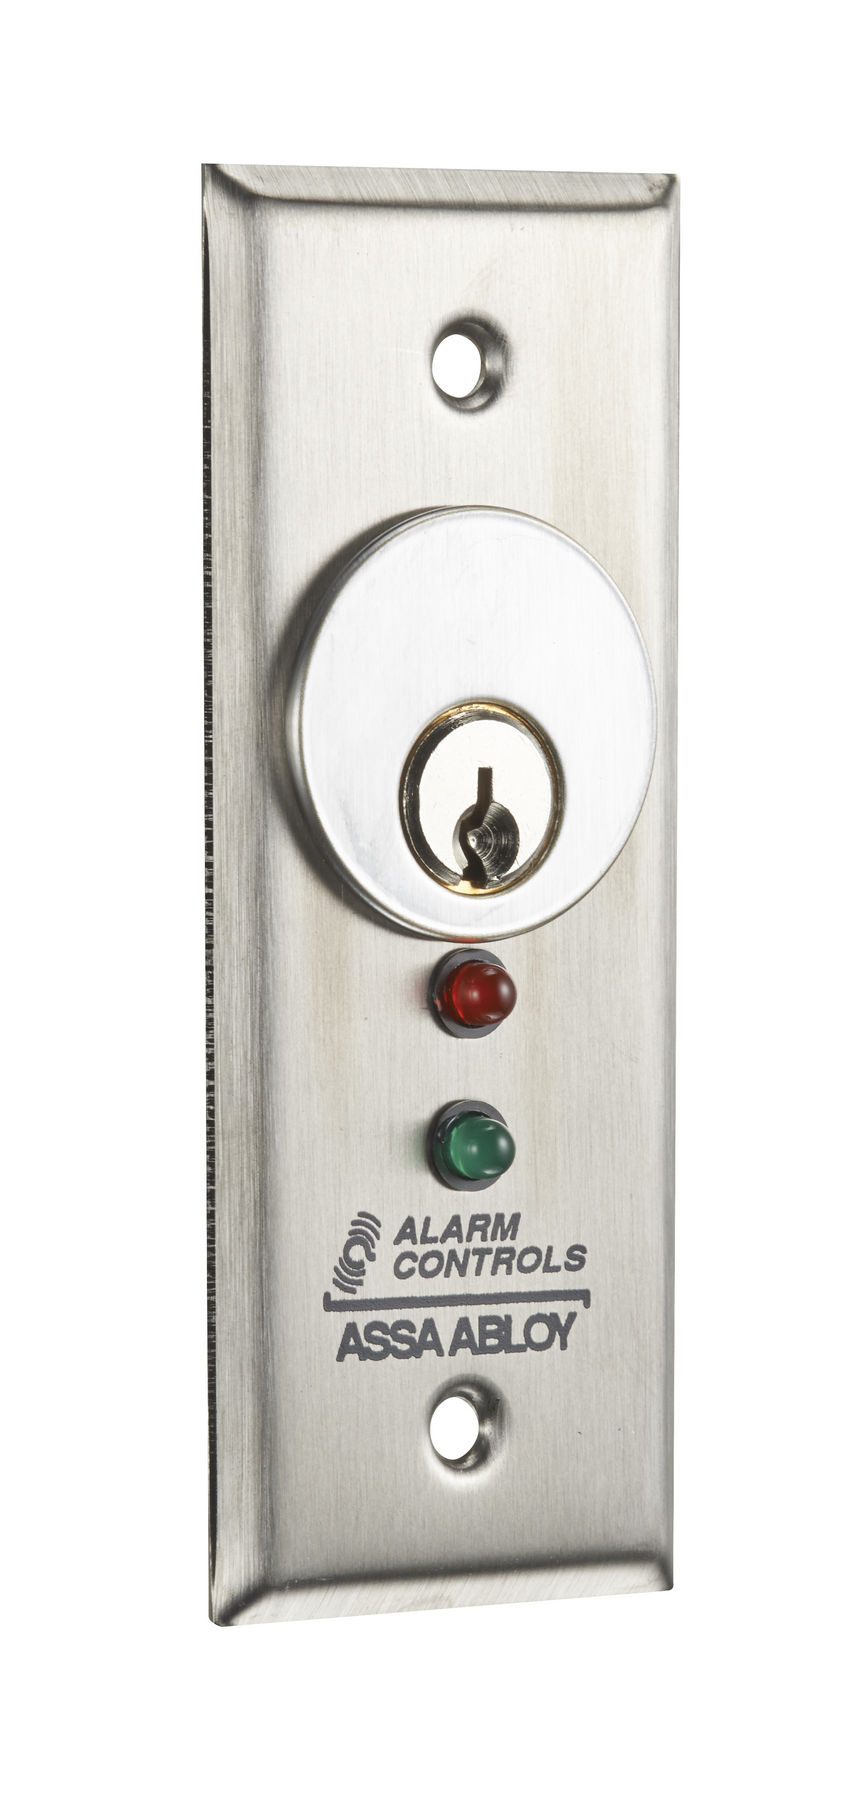 Alarm Controls Mck 3 2 Narrow Stainless Steel Plate With